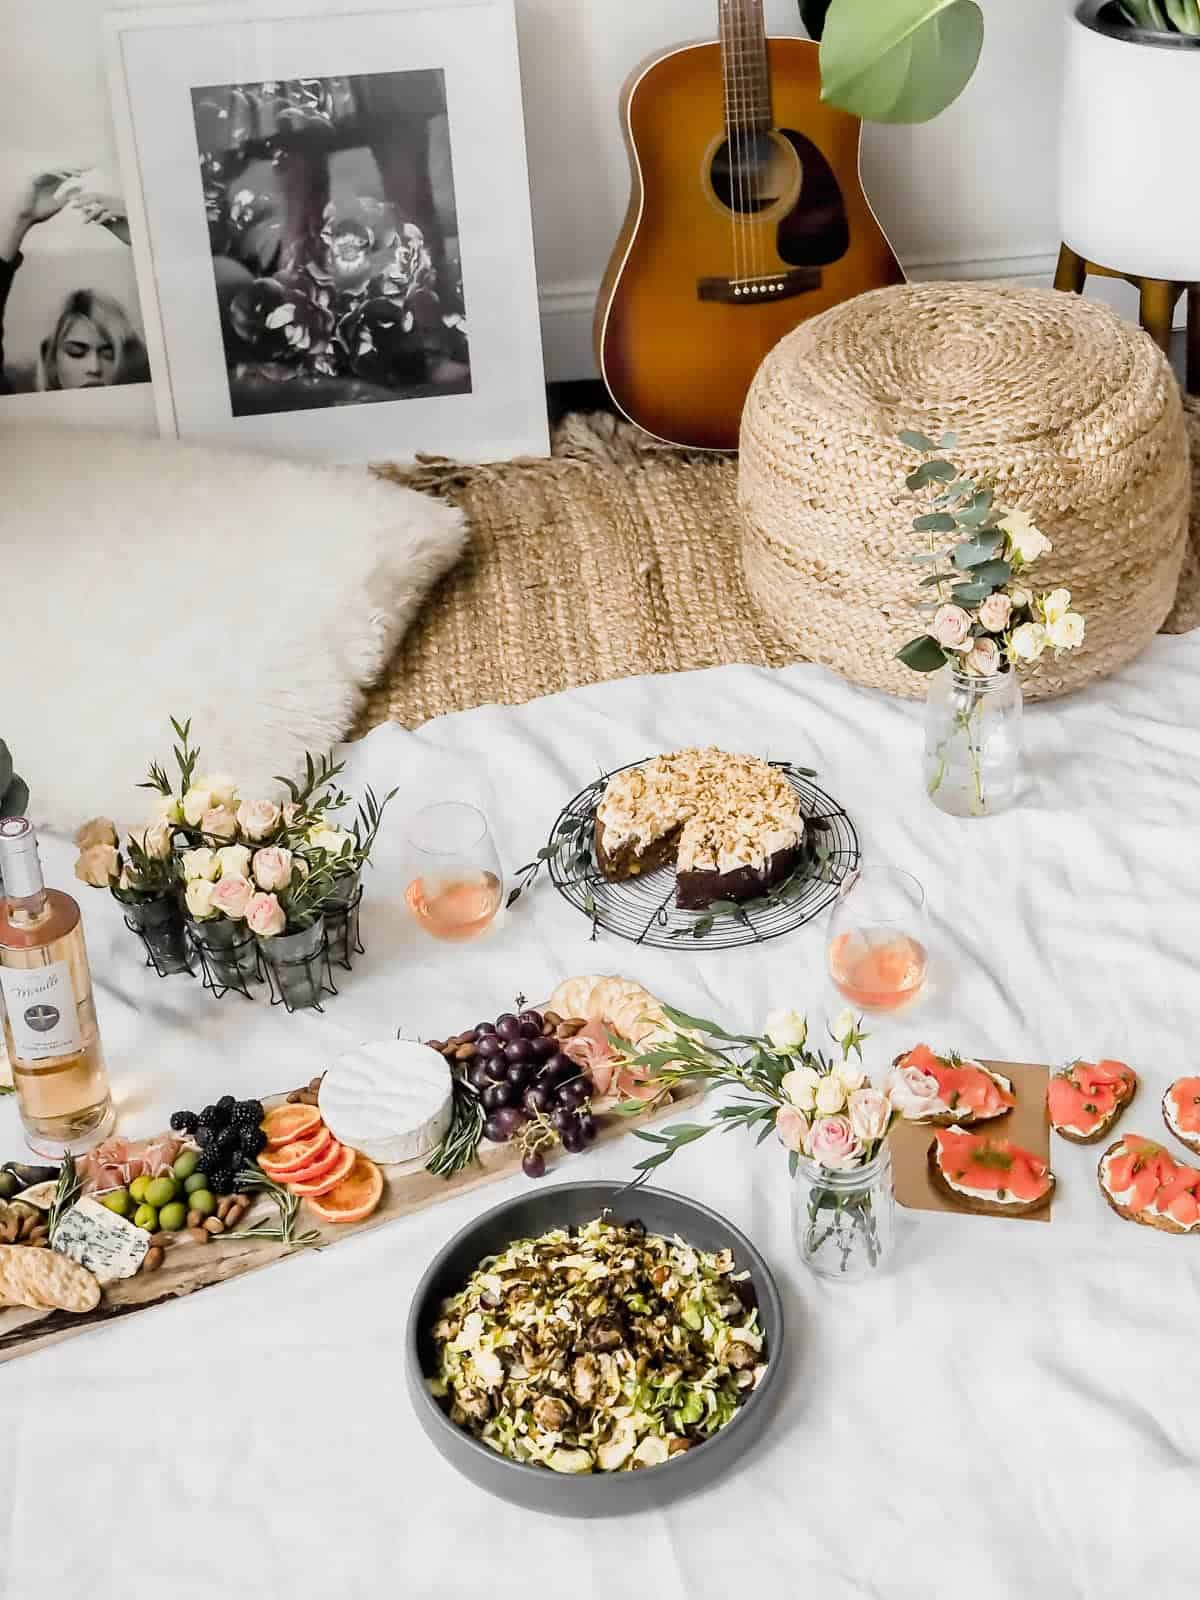 Staying in is the new going out. Especially when it involves an indoor picnic and your boo. Here are 5 steps to create the perfect indoor picnic date night!